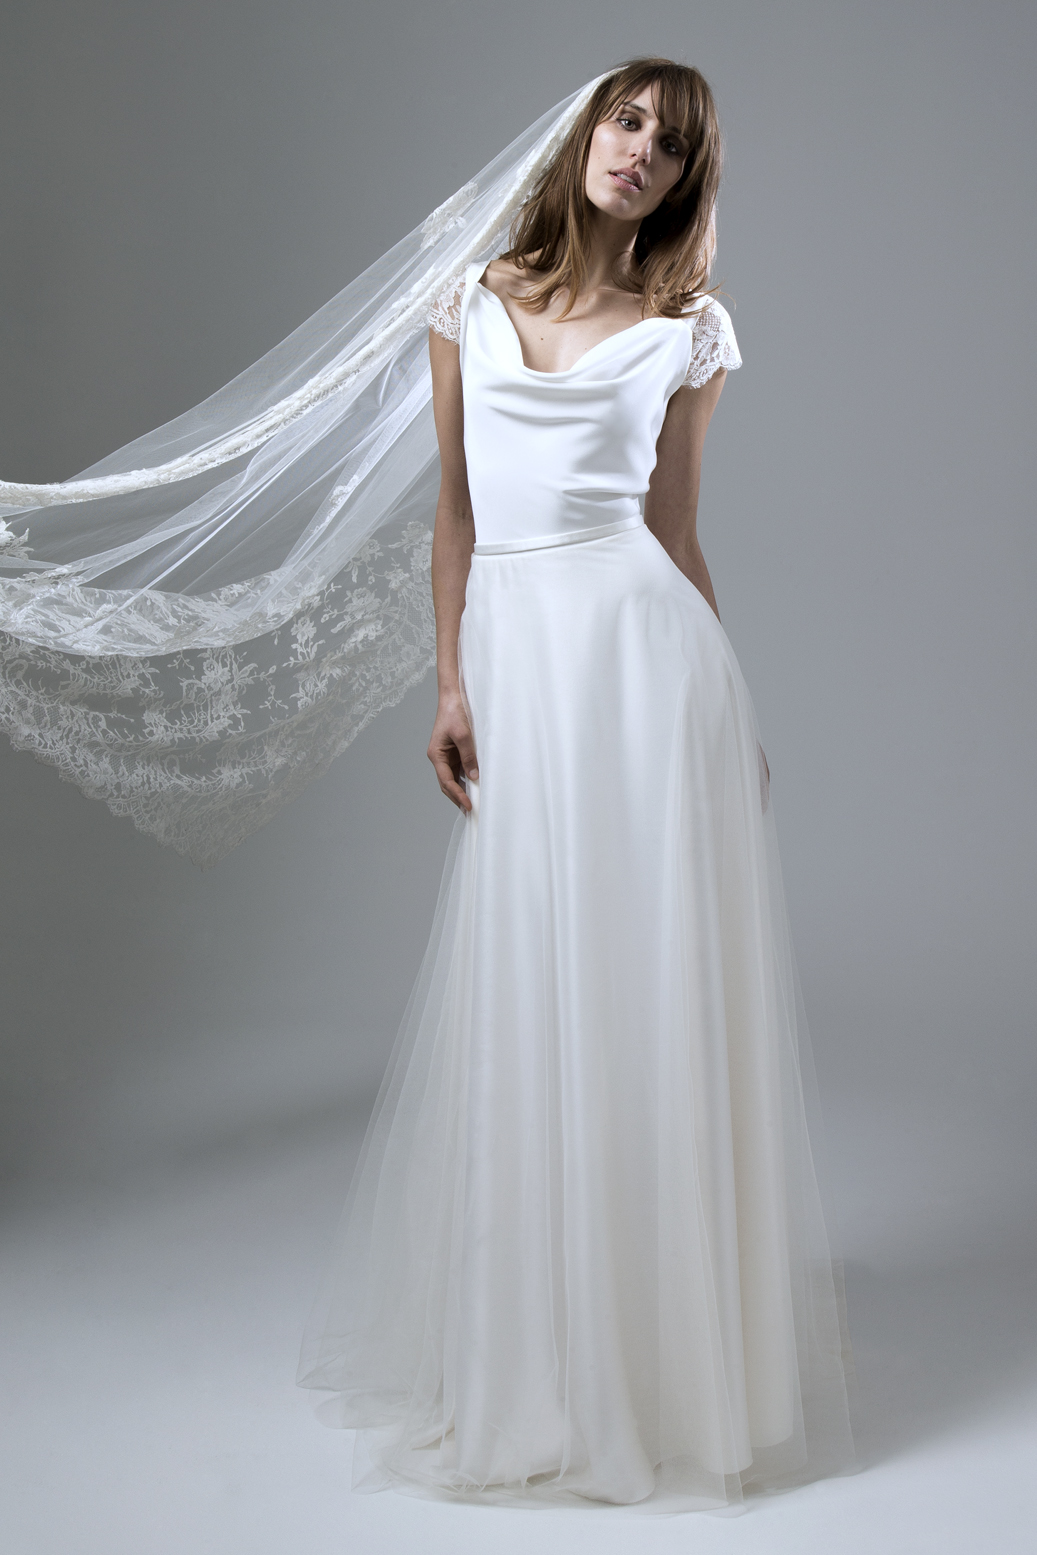 Clare Silk Crepe Cowl Neck with Silk Tulle Circular Skirt Wedding Dress by Halfpenny London